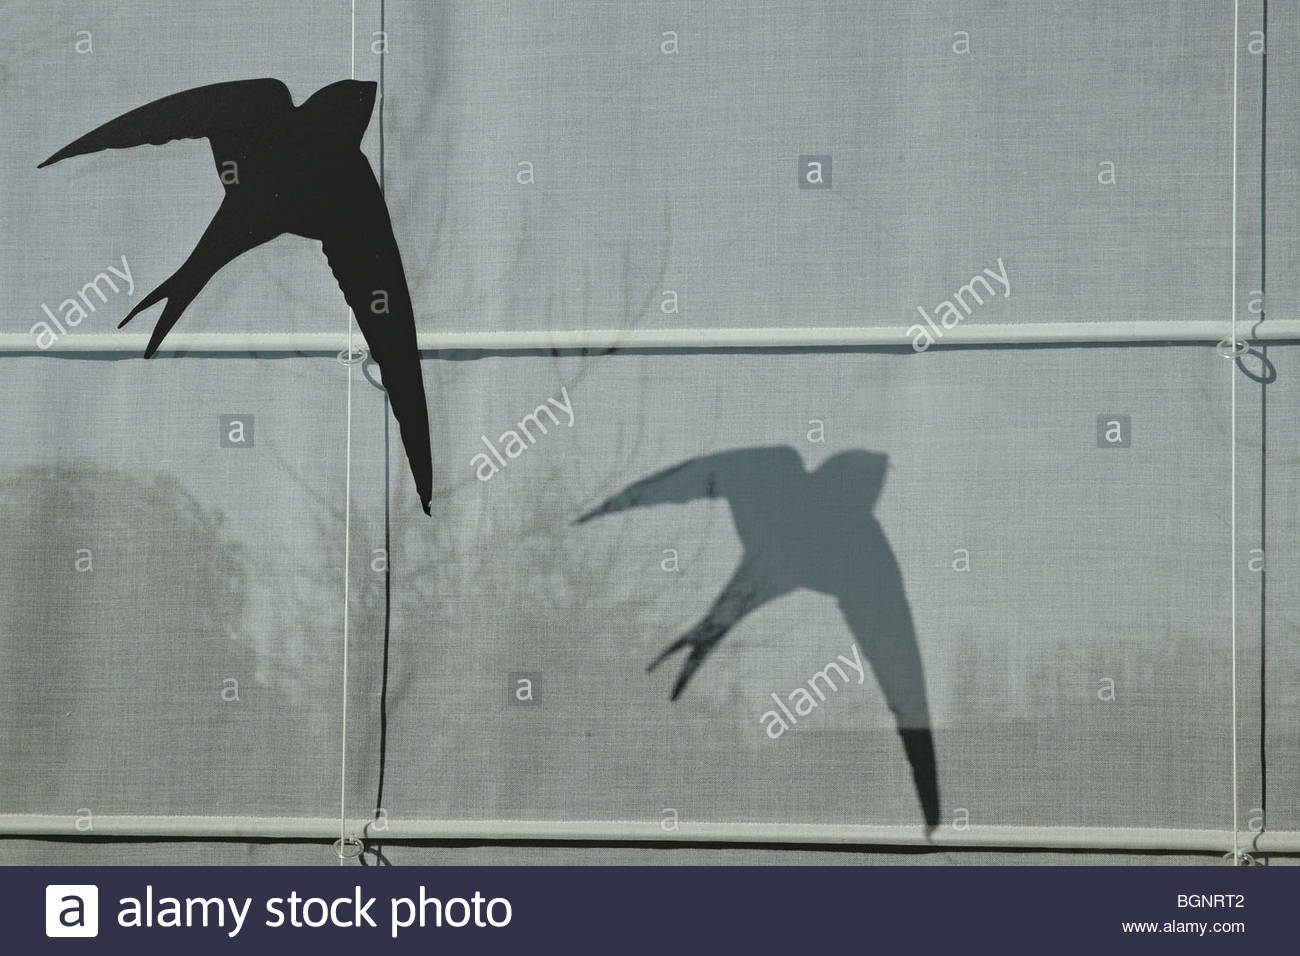 Sticker of silhouetted bird of prey shape to avoid birds crashing into window - Stock Image